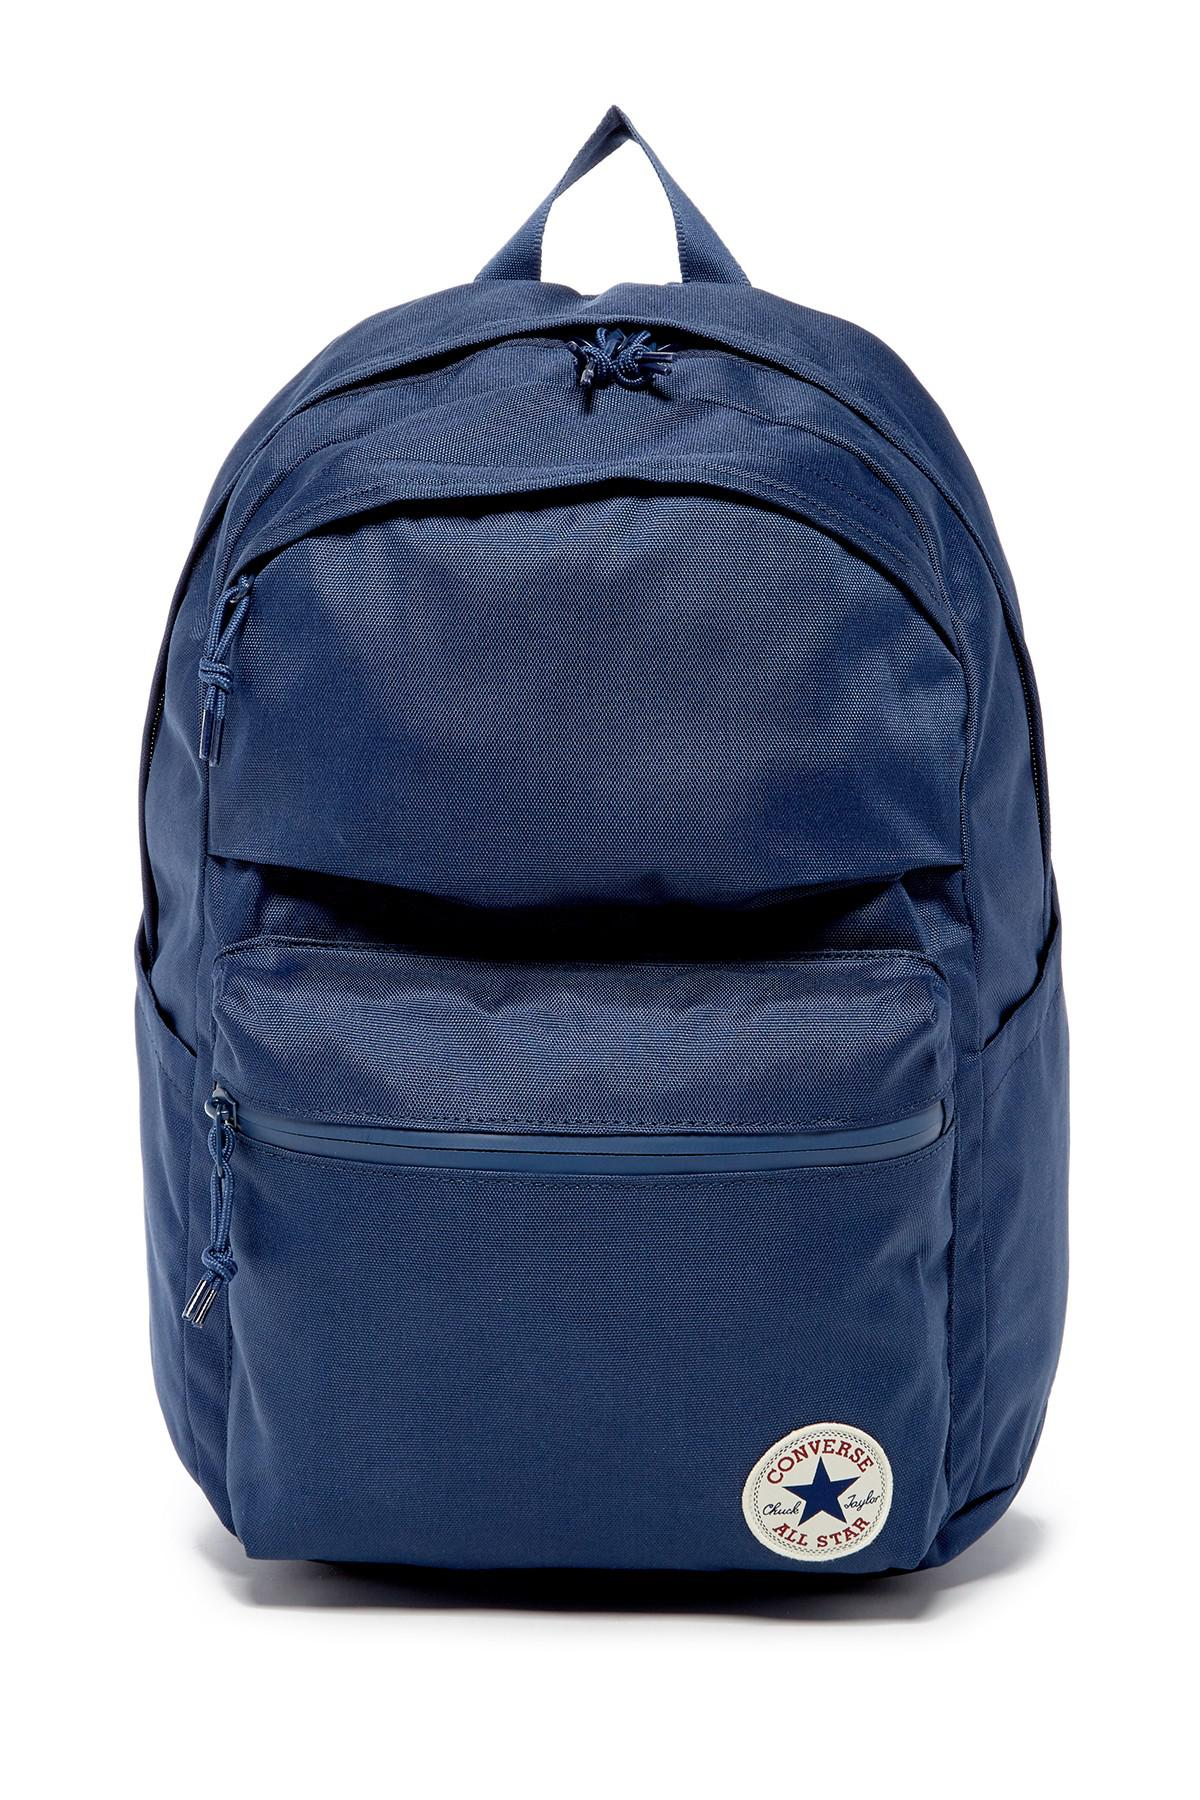 2f044a0fa4 Lyst - Converse Poly Chuck Plus 1.0 Backpack in Blue